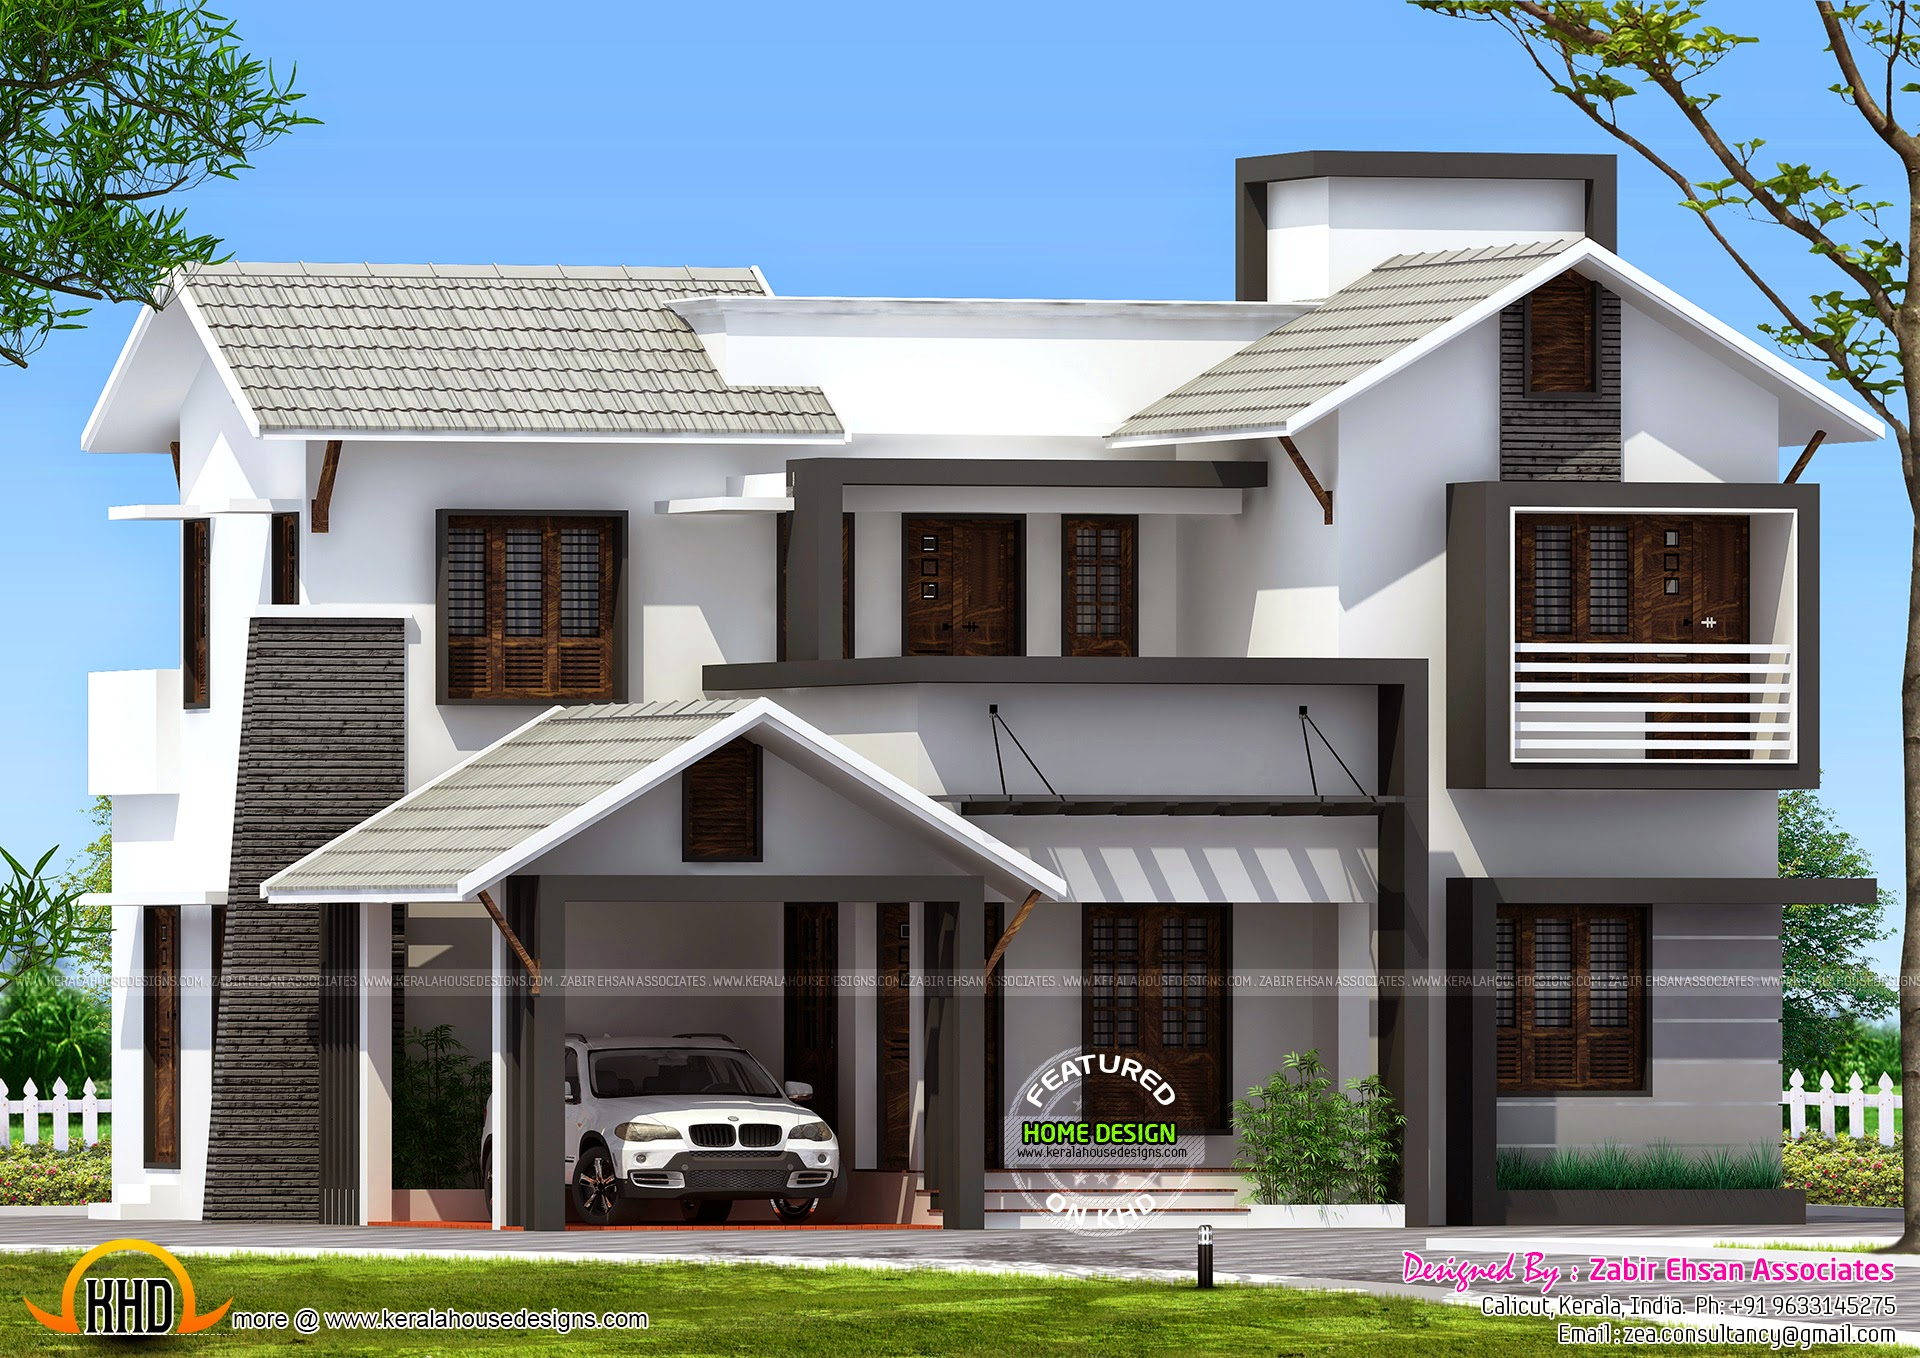 179 sqm mixed style house exterior kerala home design Kerala style house exterior designs